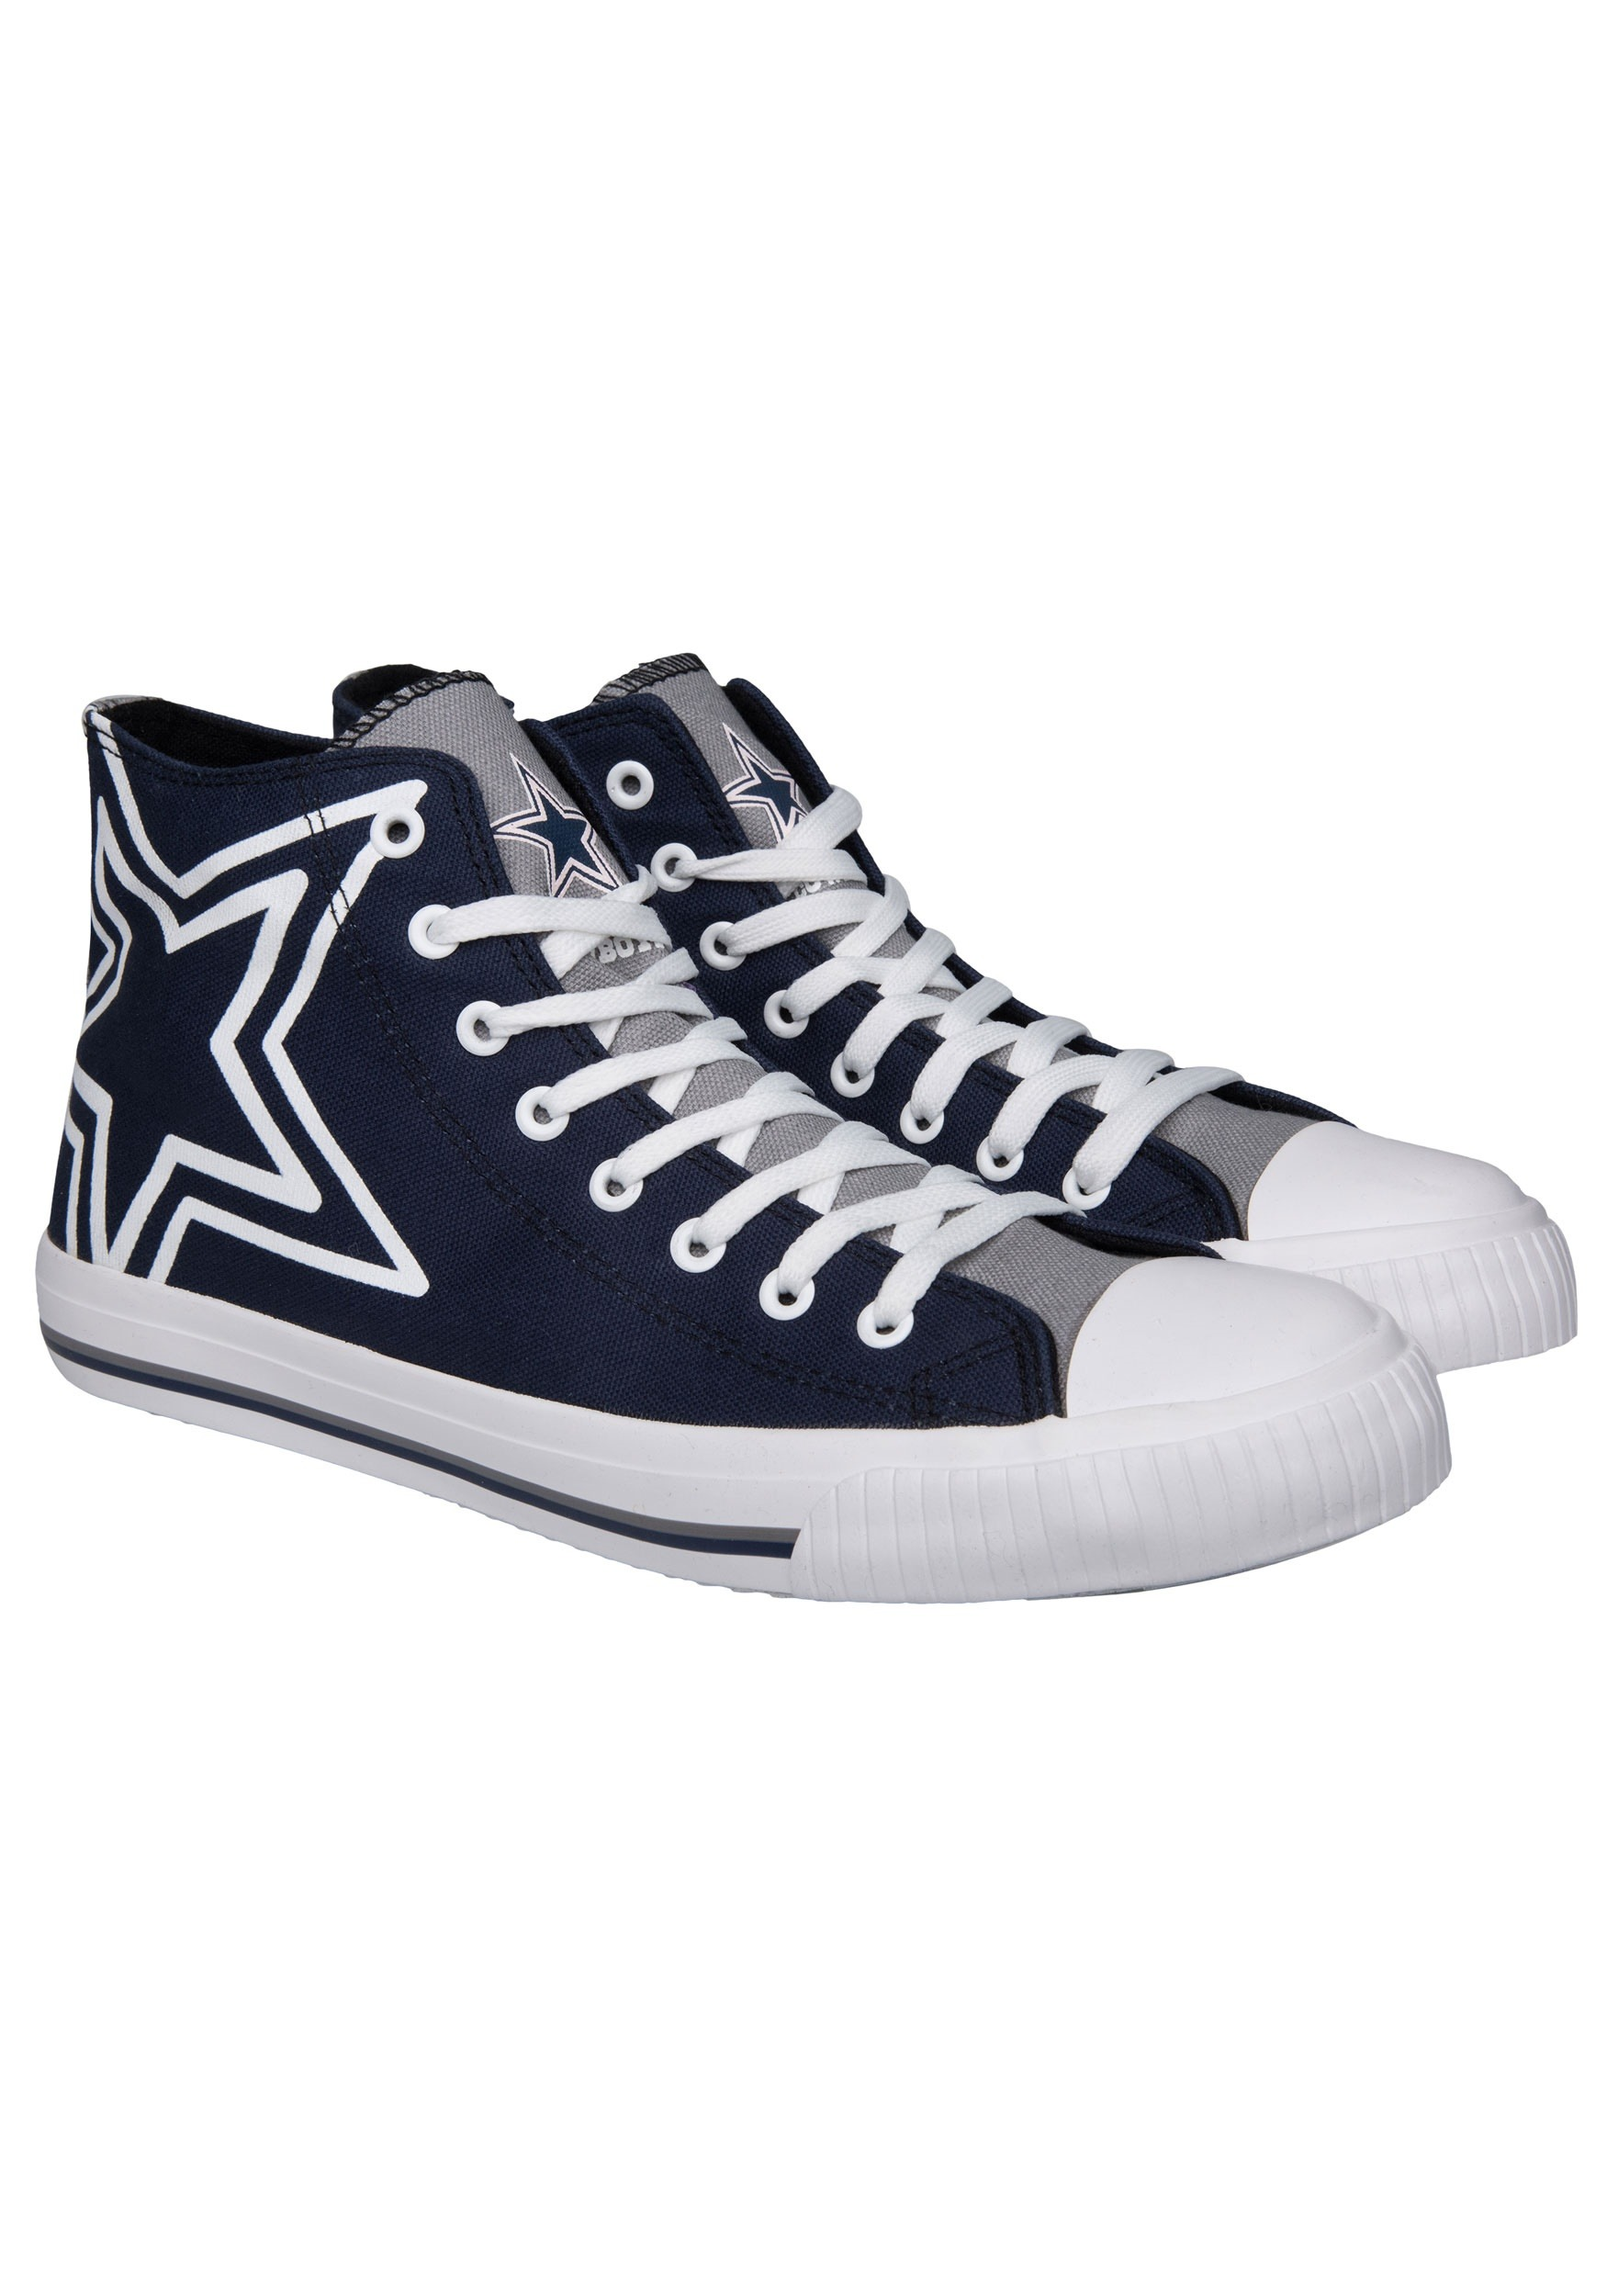 sneakers for cheap 03fec a90c6 Dallas Cowboys High Top Big Logo Canvas Shoes